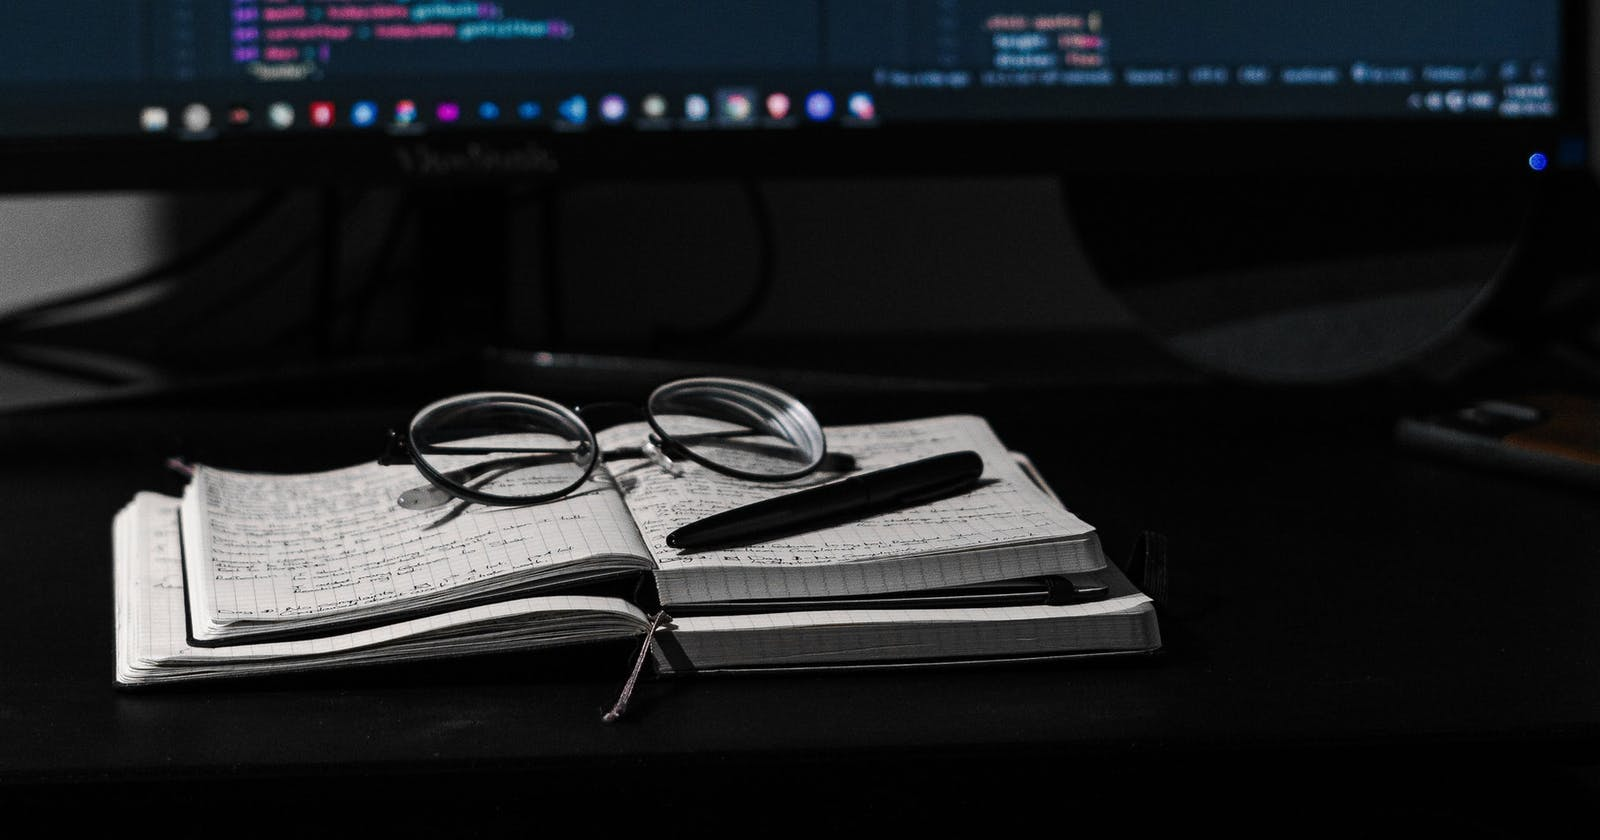 7 Resources To Get Started With Developer Relations